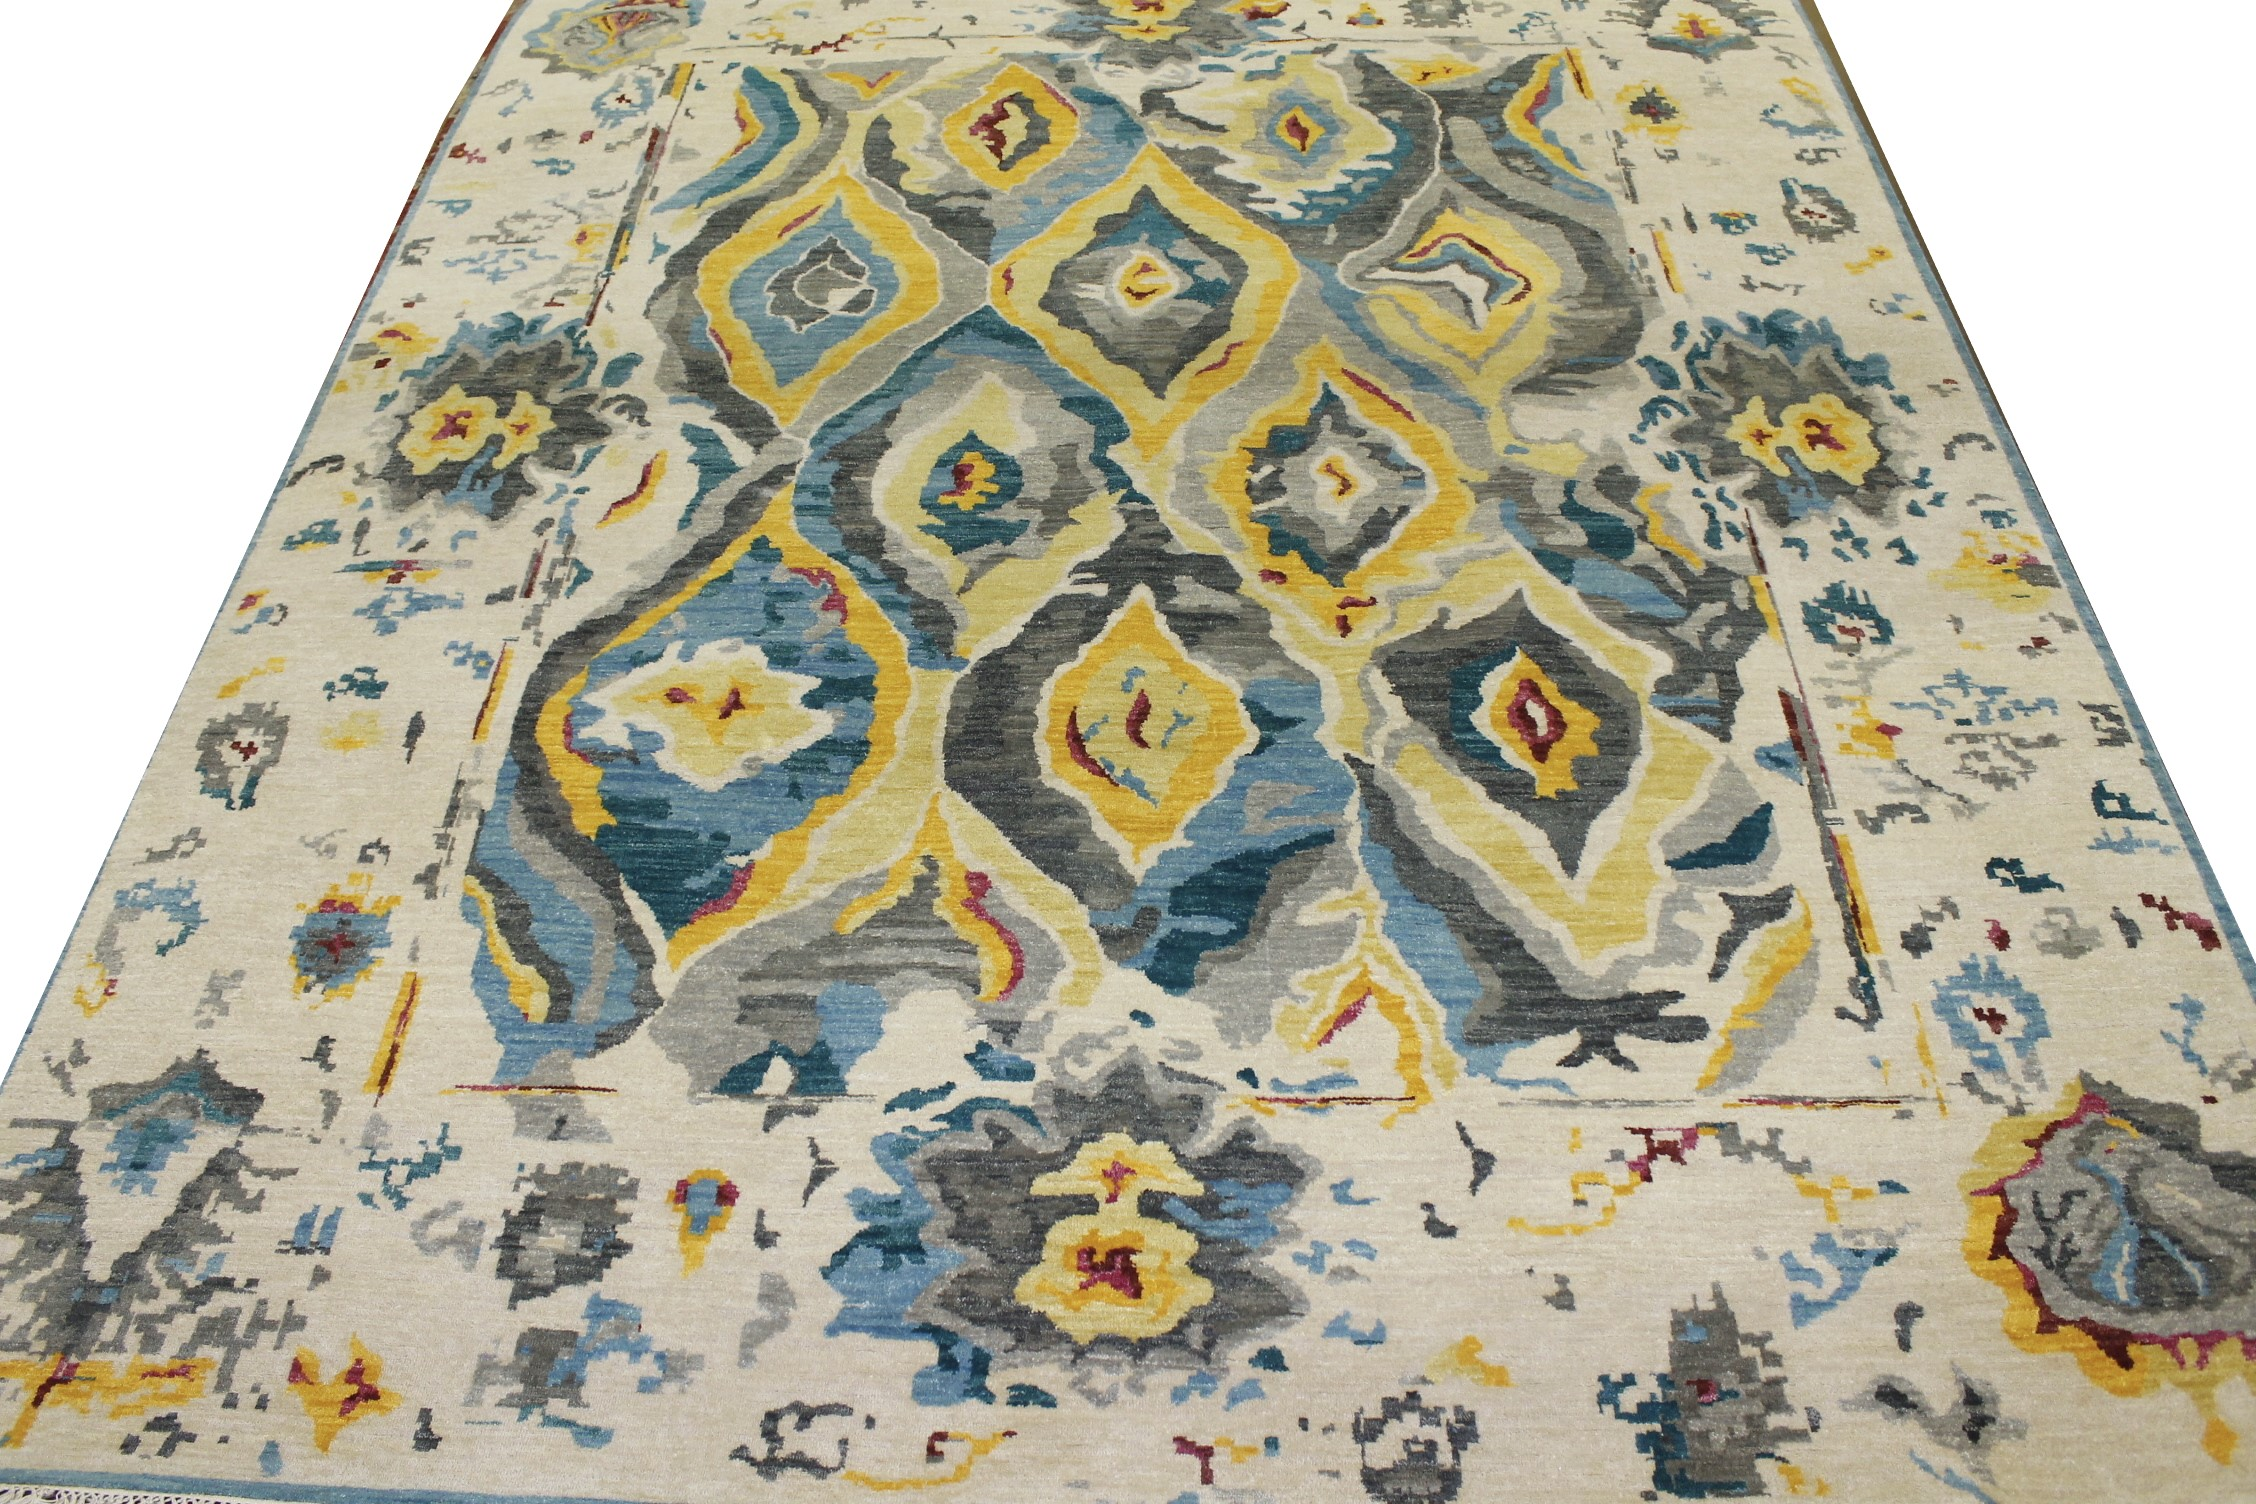 8x10 Contemporary Hand Knotted Wool Area Rug - MR022209